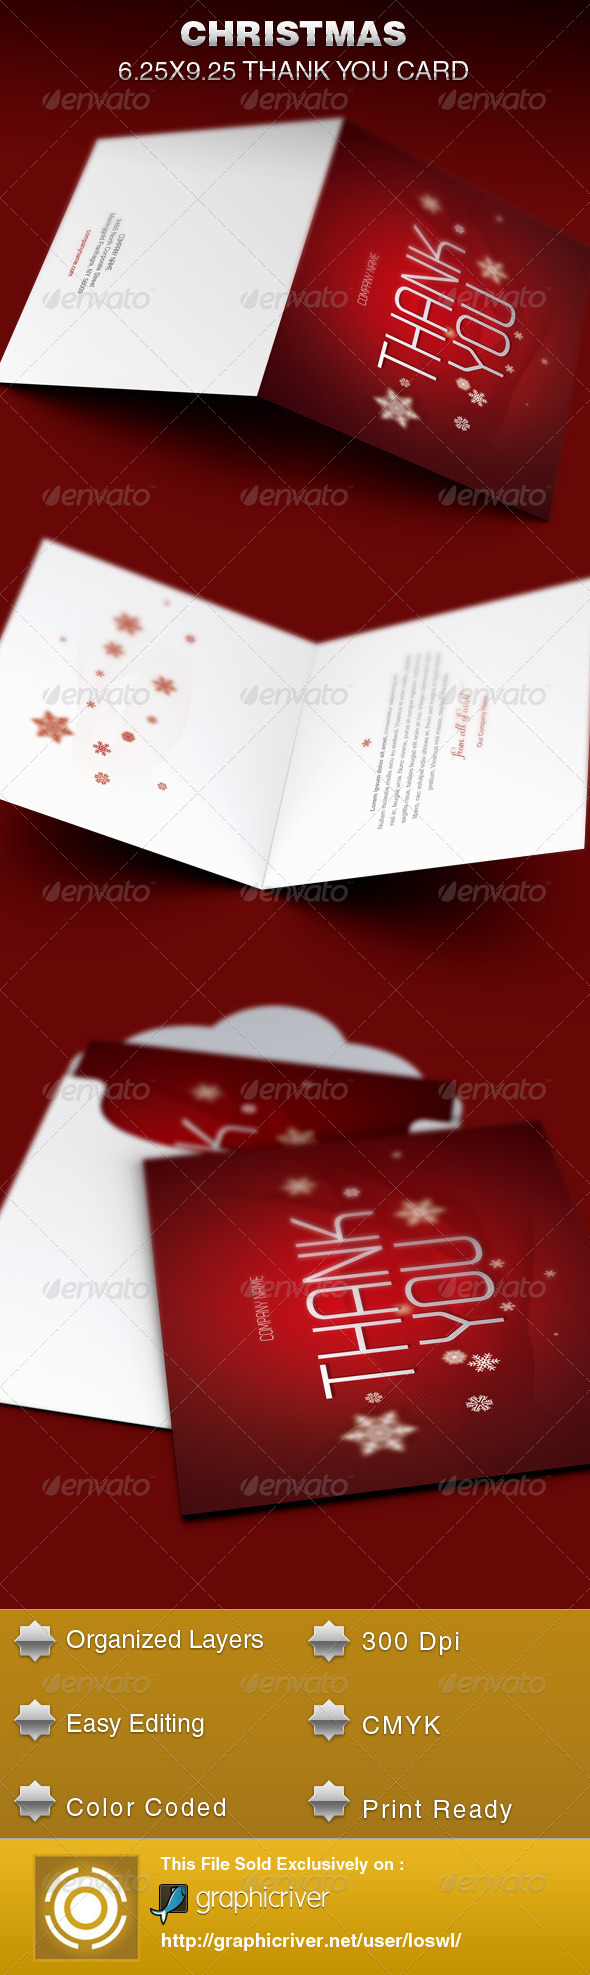 GraphicRiver Christmas Thank You Card Template 6157473